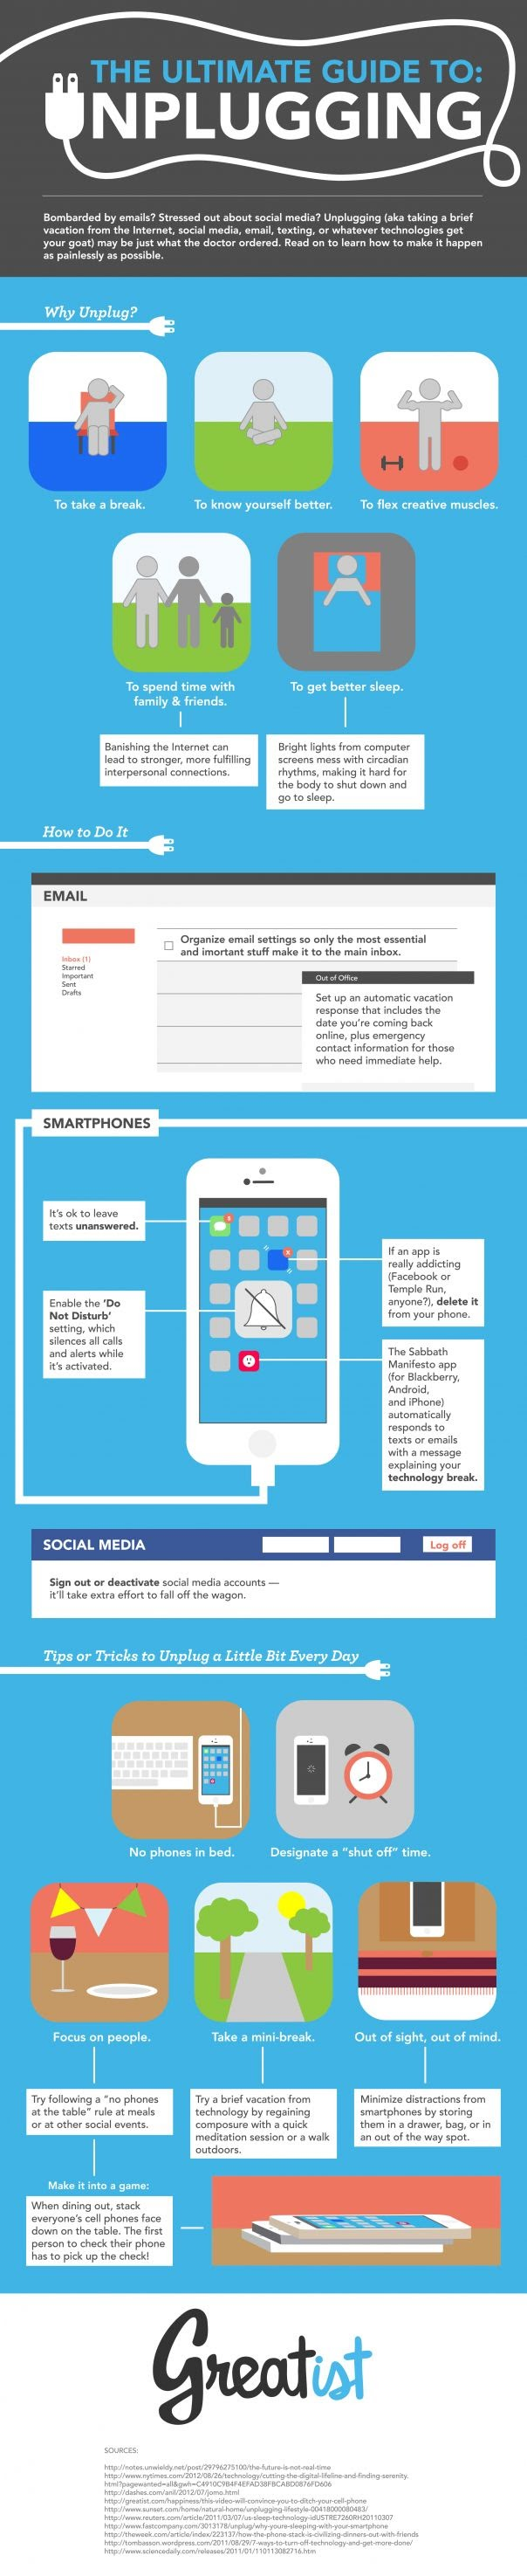 The-Ultimate-Guide-to-Unplugging #Infographic